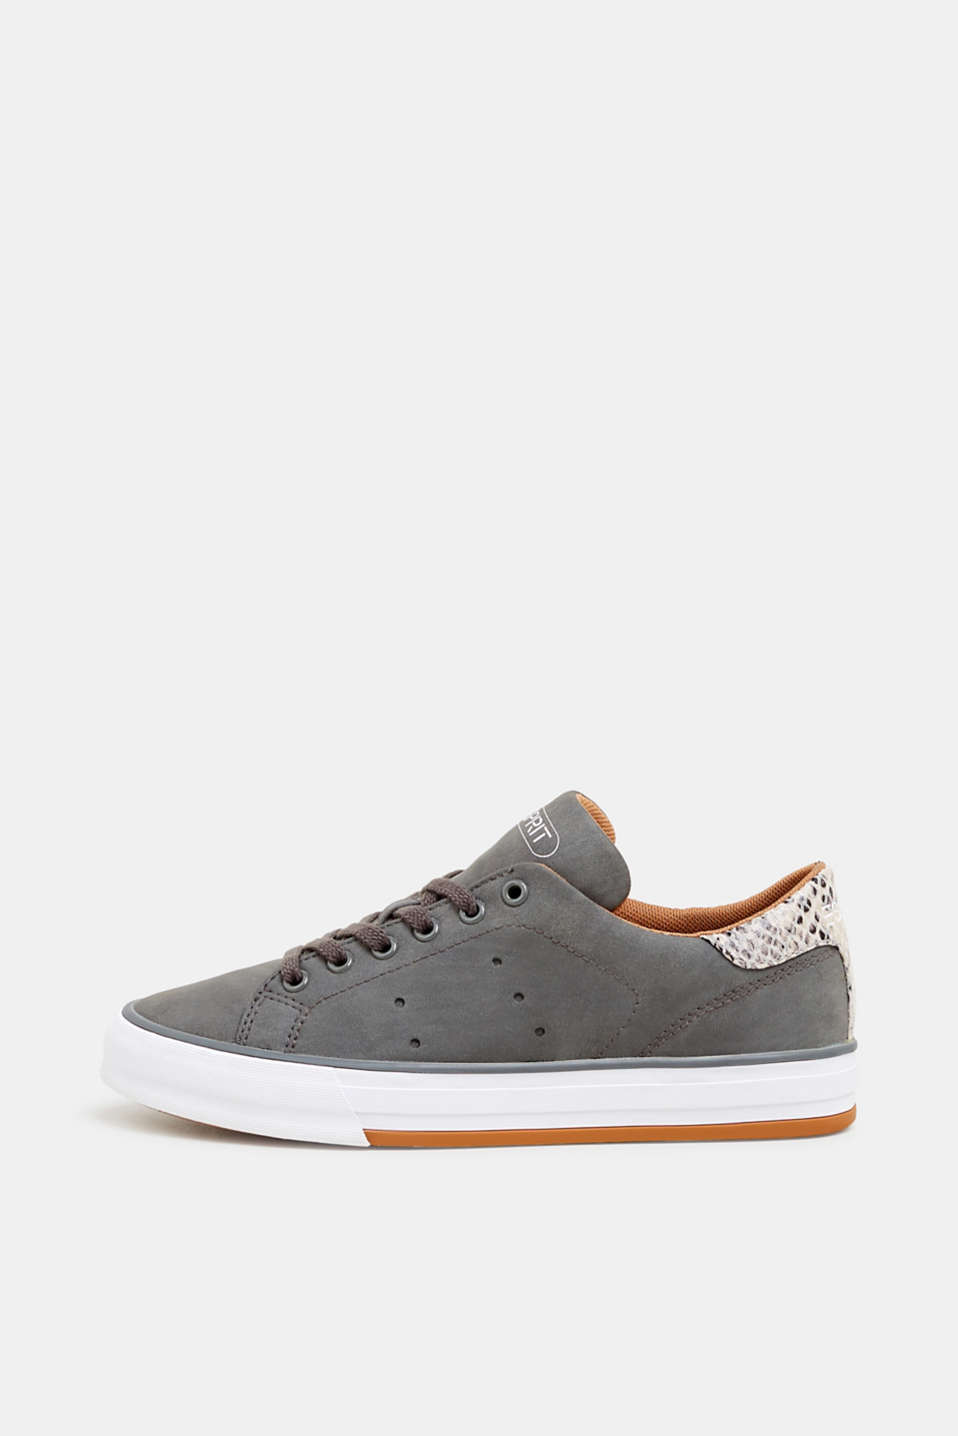 Esprit - Sneaker in Nubuk-Optik